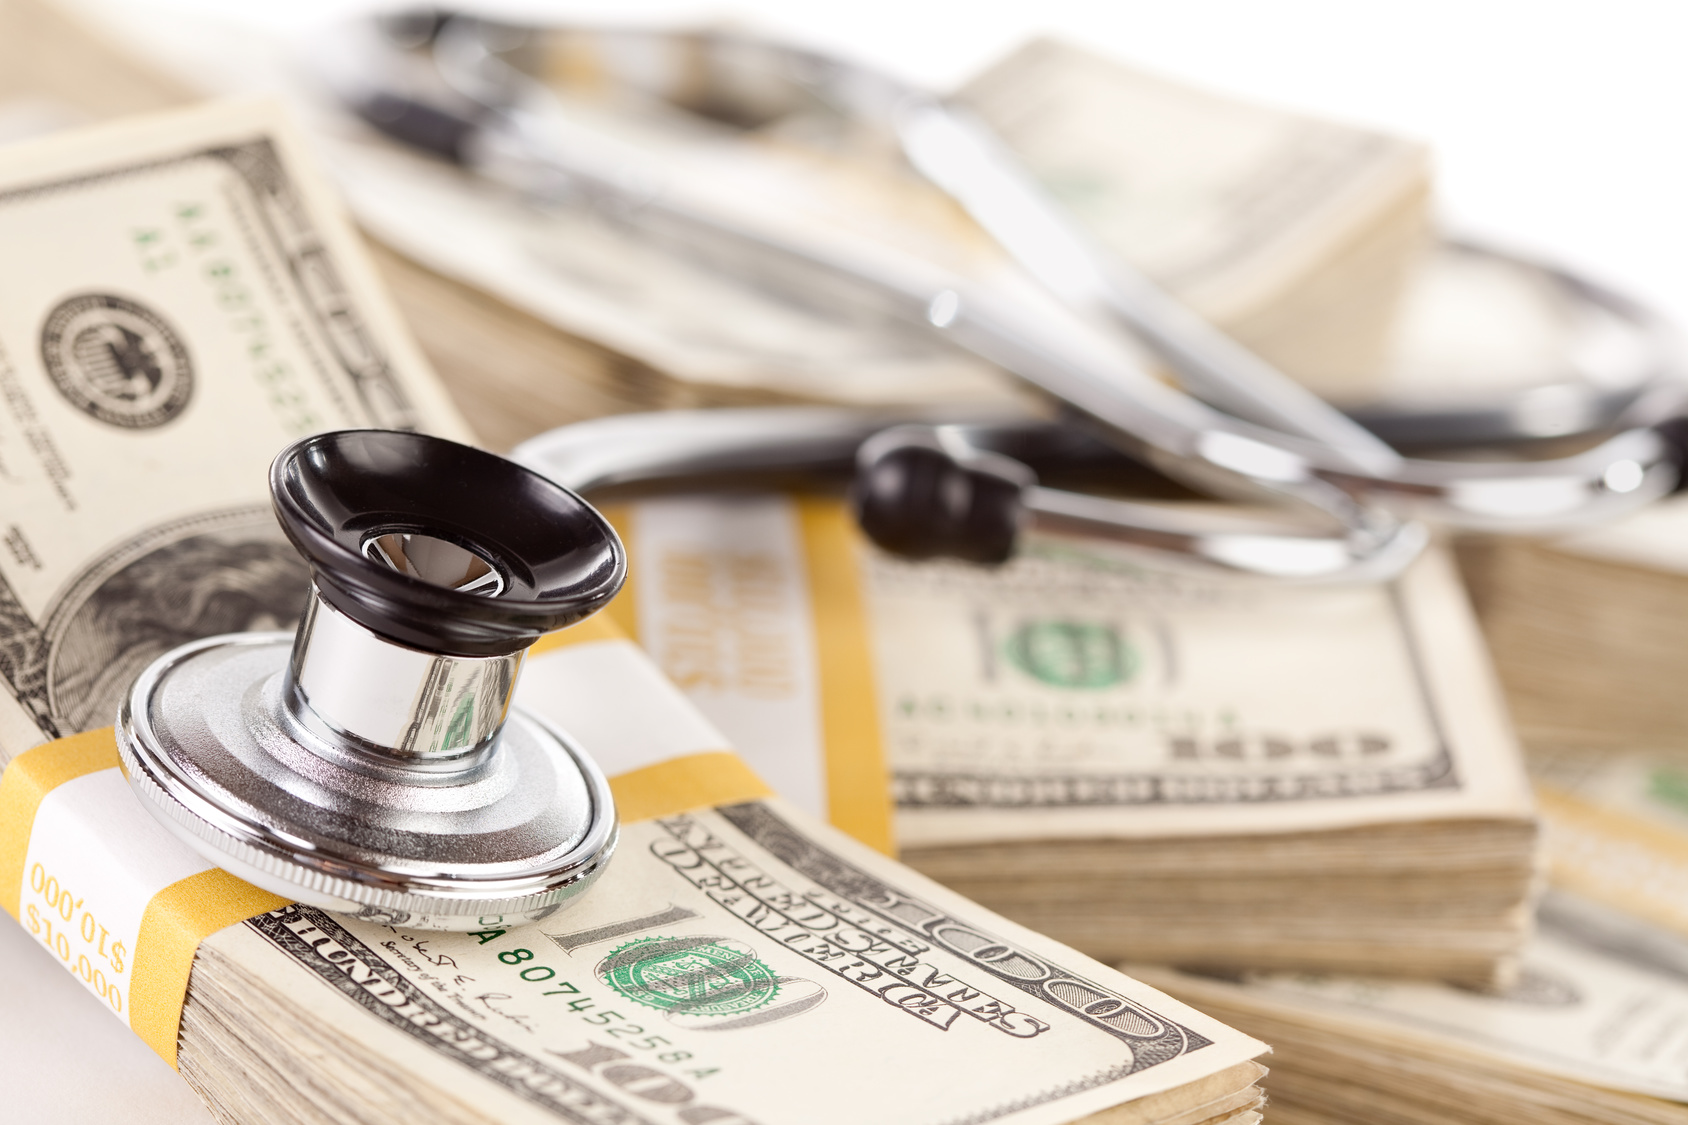 Stethoscope Laying on Stacks of Hundred Dollar Bills with Narrow Depth of Field.